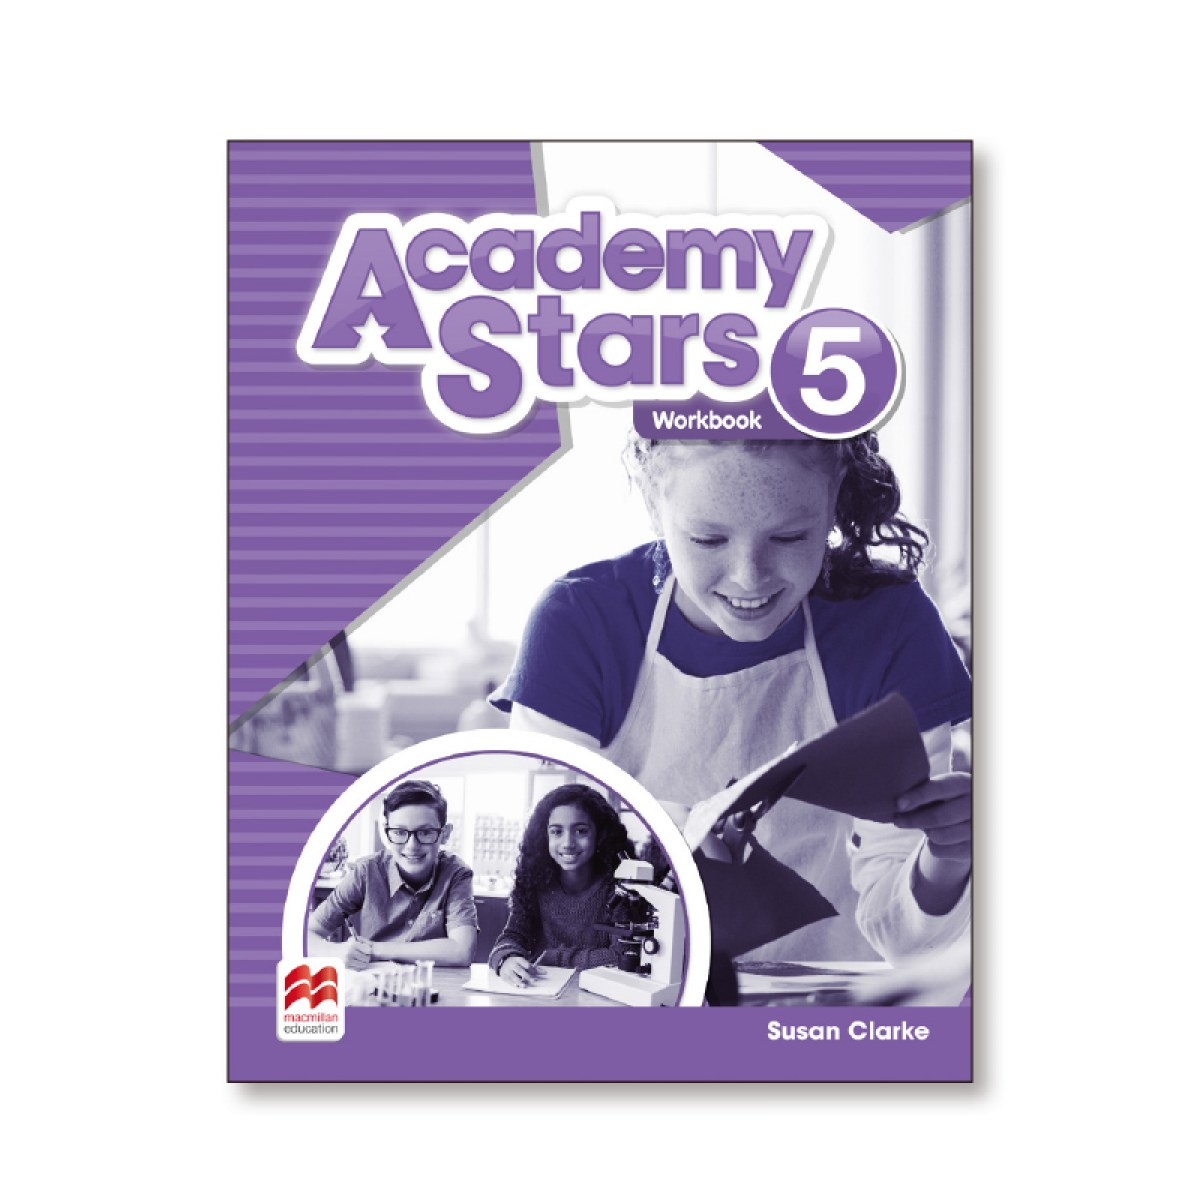 (17).ACADEMY STARS 5.(WORKBOOK)